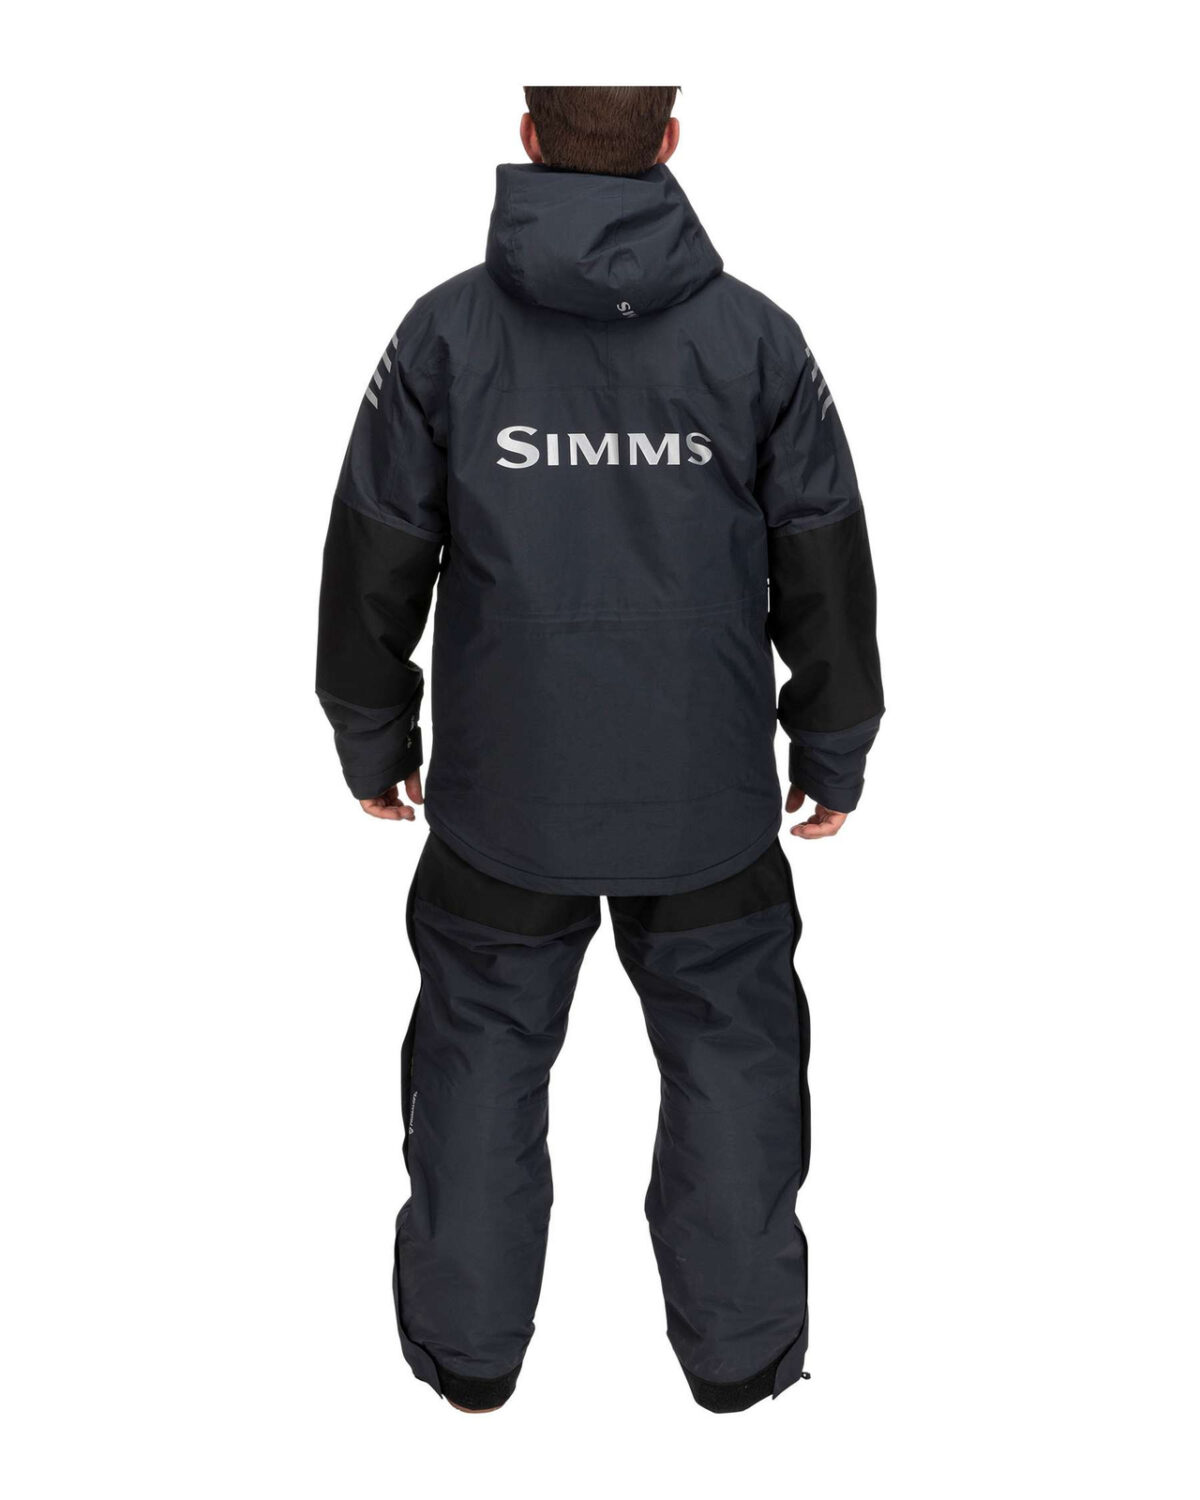 Simms Challenger Insulated Jacket 2021